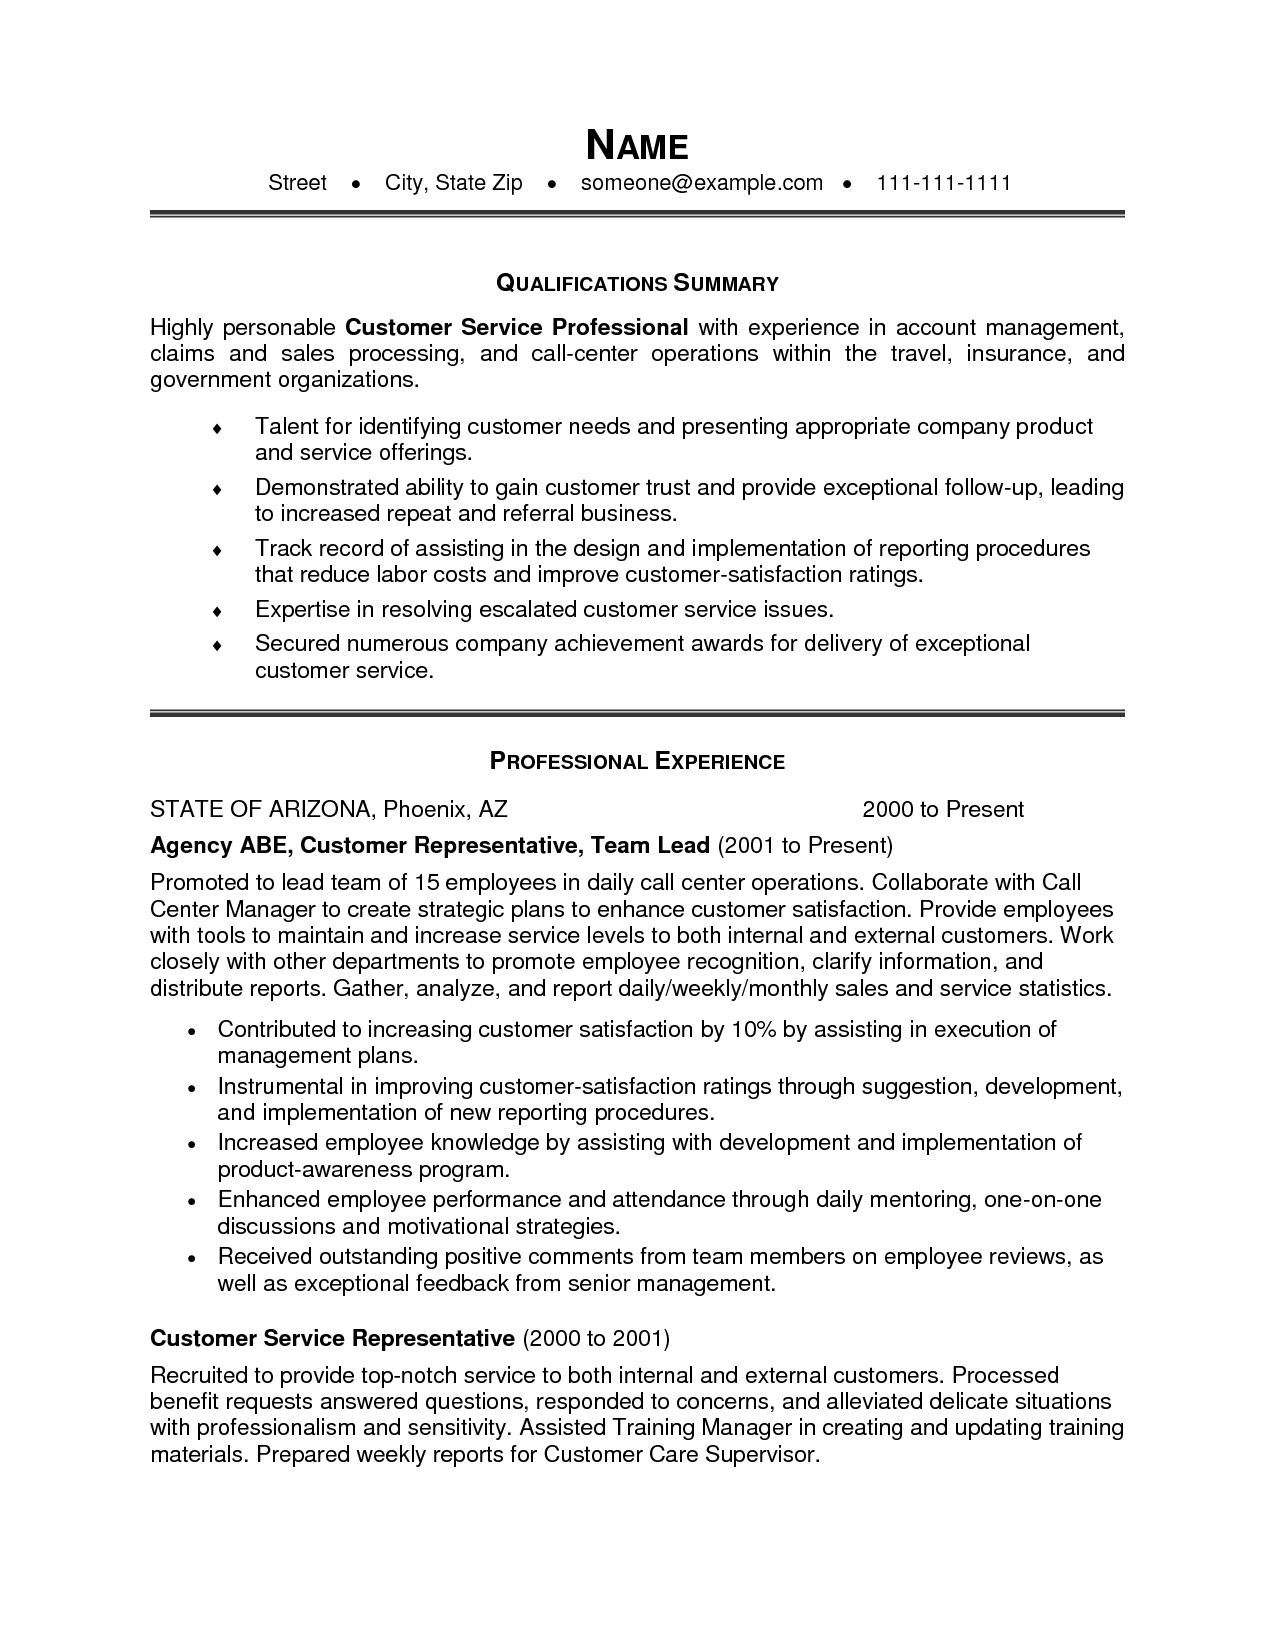 customer service resume summary examples resume summary examples customer service 18ba541c5 - Sample Of Summary For Resume